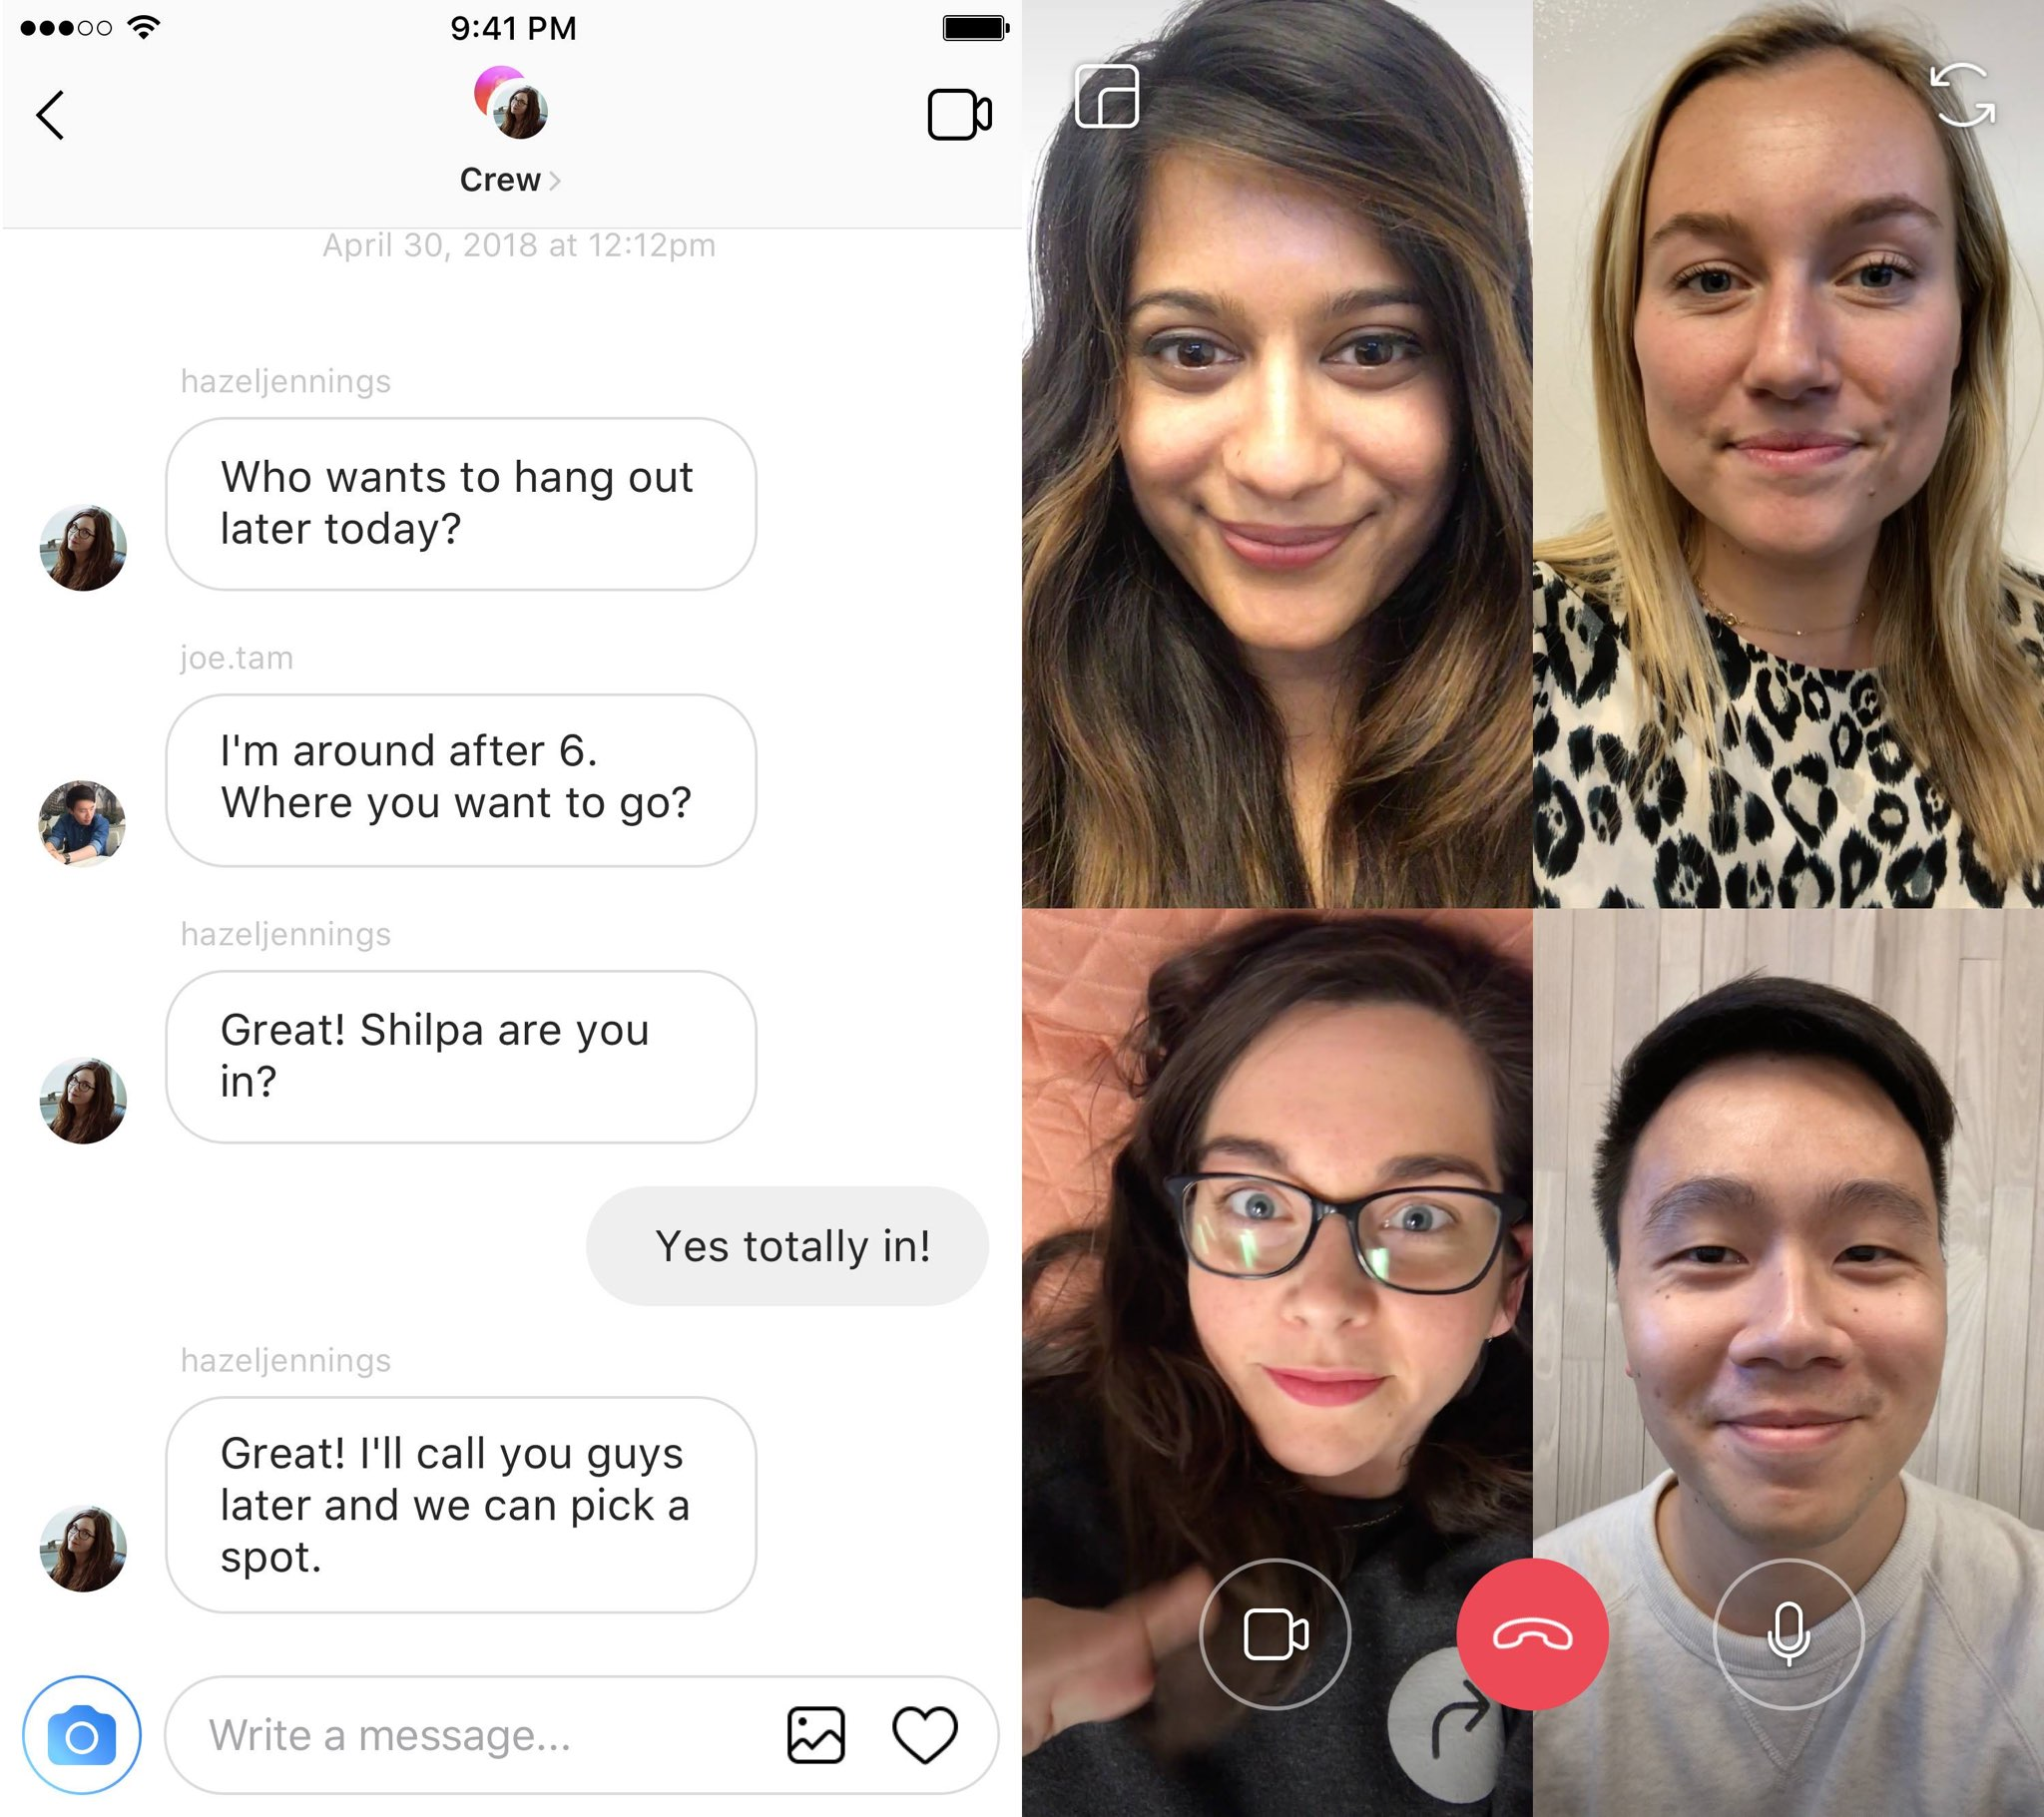 Instagram Direct is rolling out group video chat with up to 4 people at the same time